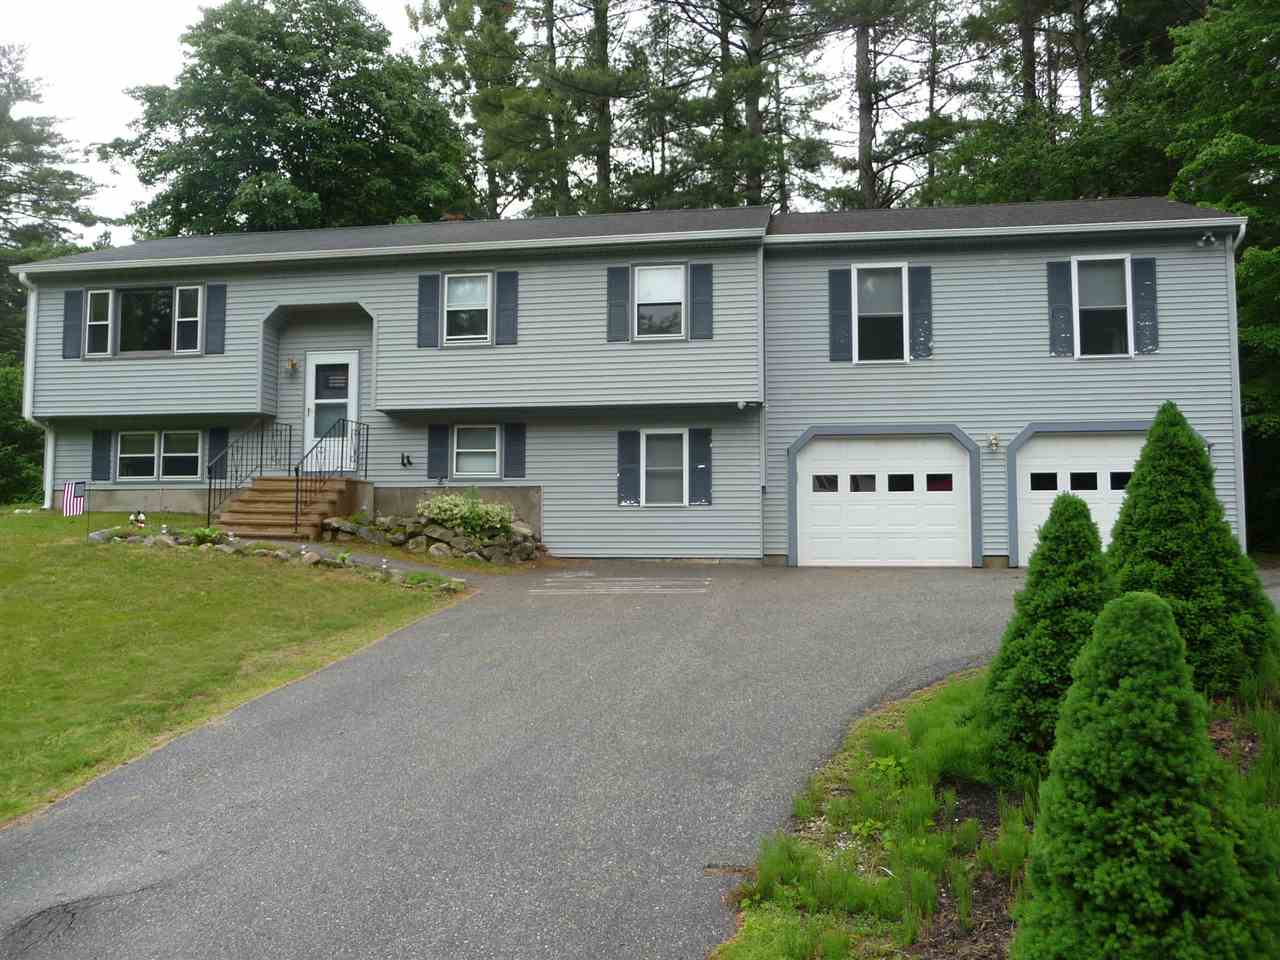 Photo of 1 Irving Drive Concord NH 03301